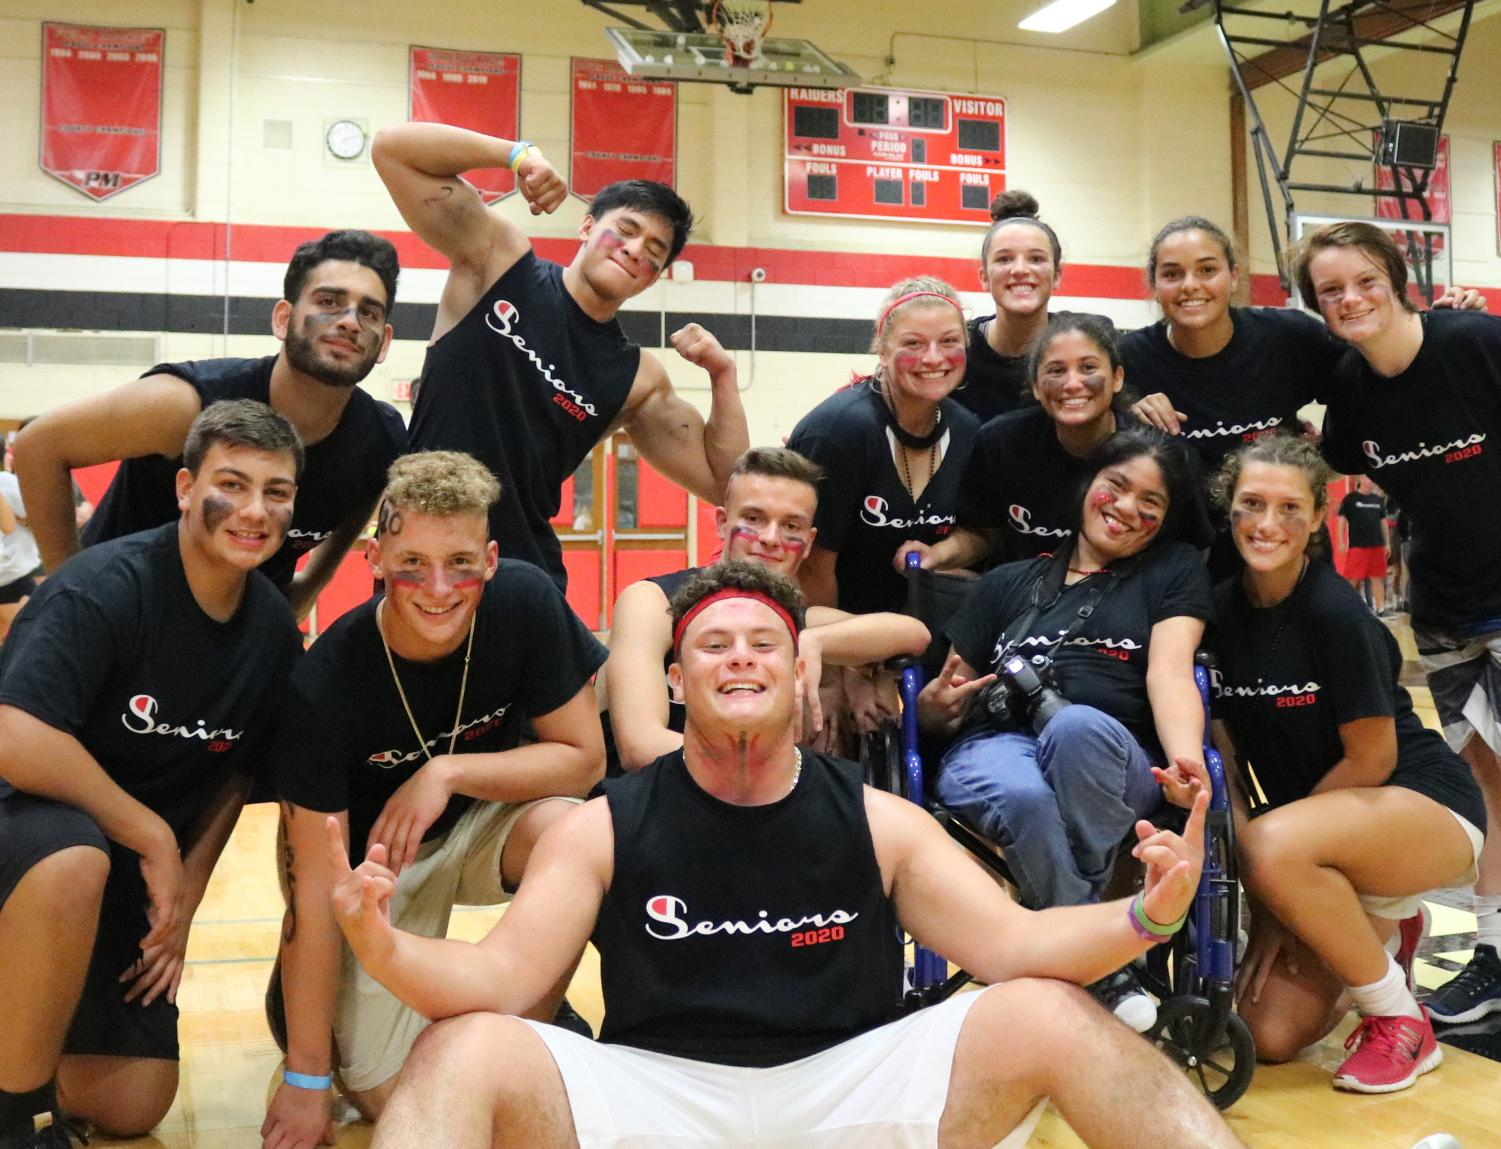 Seniors R.J., Tony, Brian, Sam, Emma, Savannah, Cat, Gabby, Karmyn, Rosie, Liam, Steven, & Luke pose together at the first major event of their Senior Year experience. They are ready for what is coming.